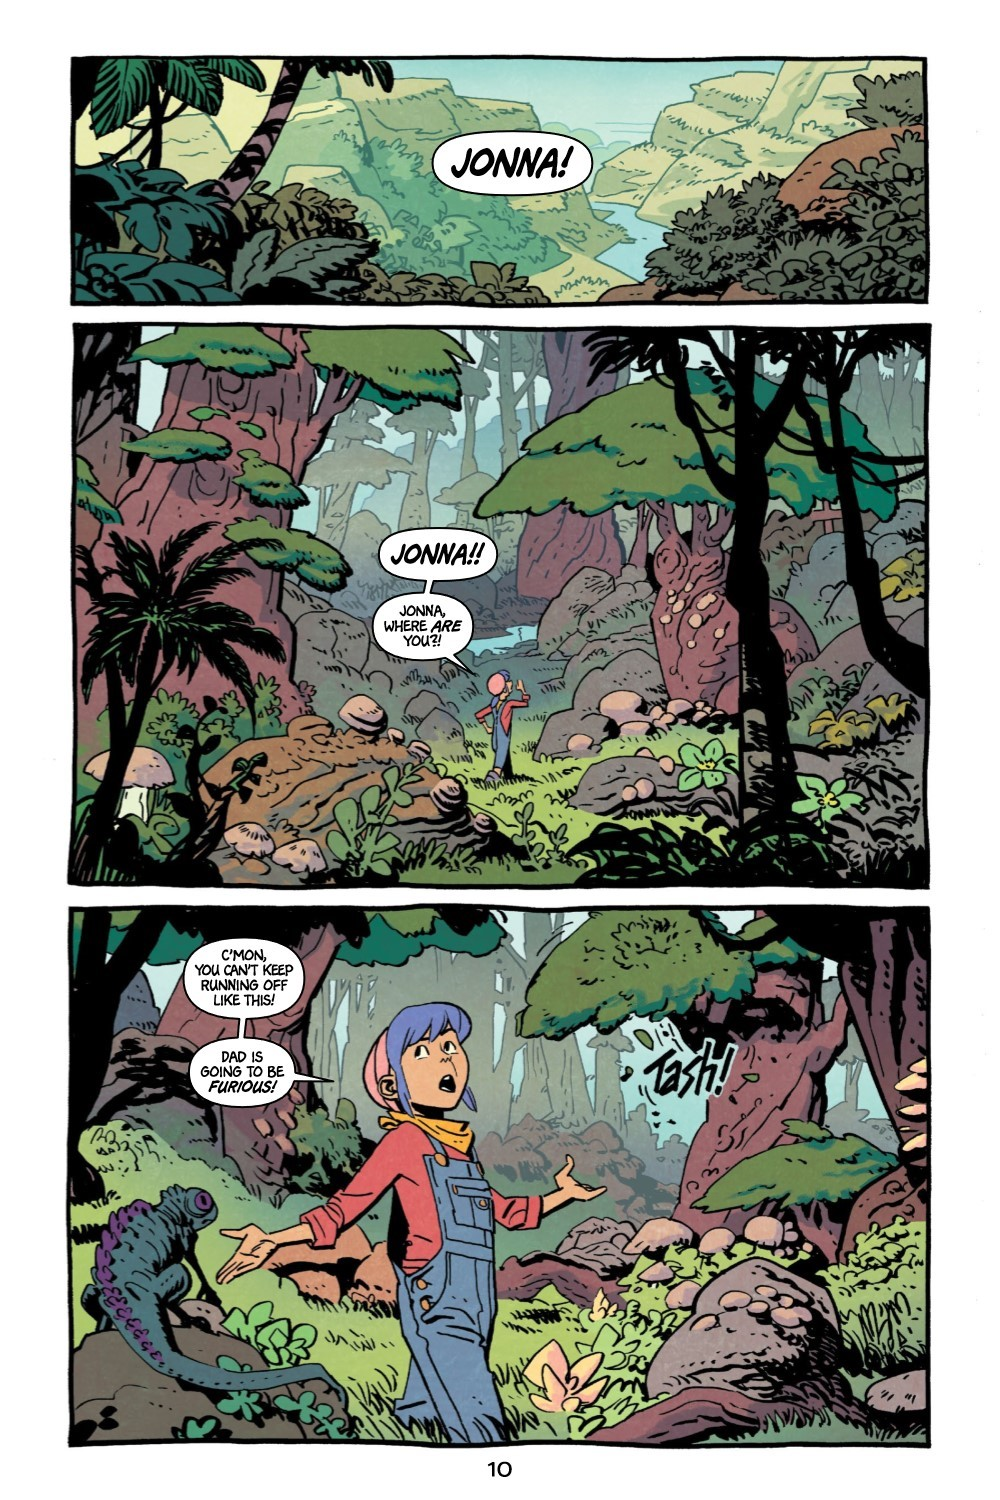 JONNA-V1-REFERENCE-011 ComicList Previews: JONNA AND THE UNPOSSIBLE MONSTER VOLUME 1 TP